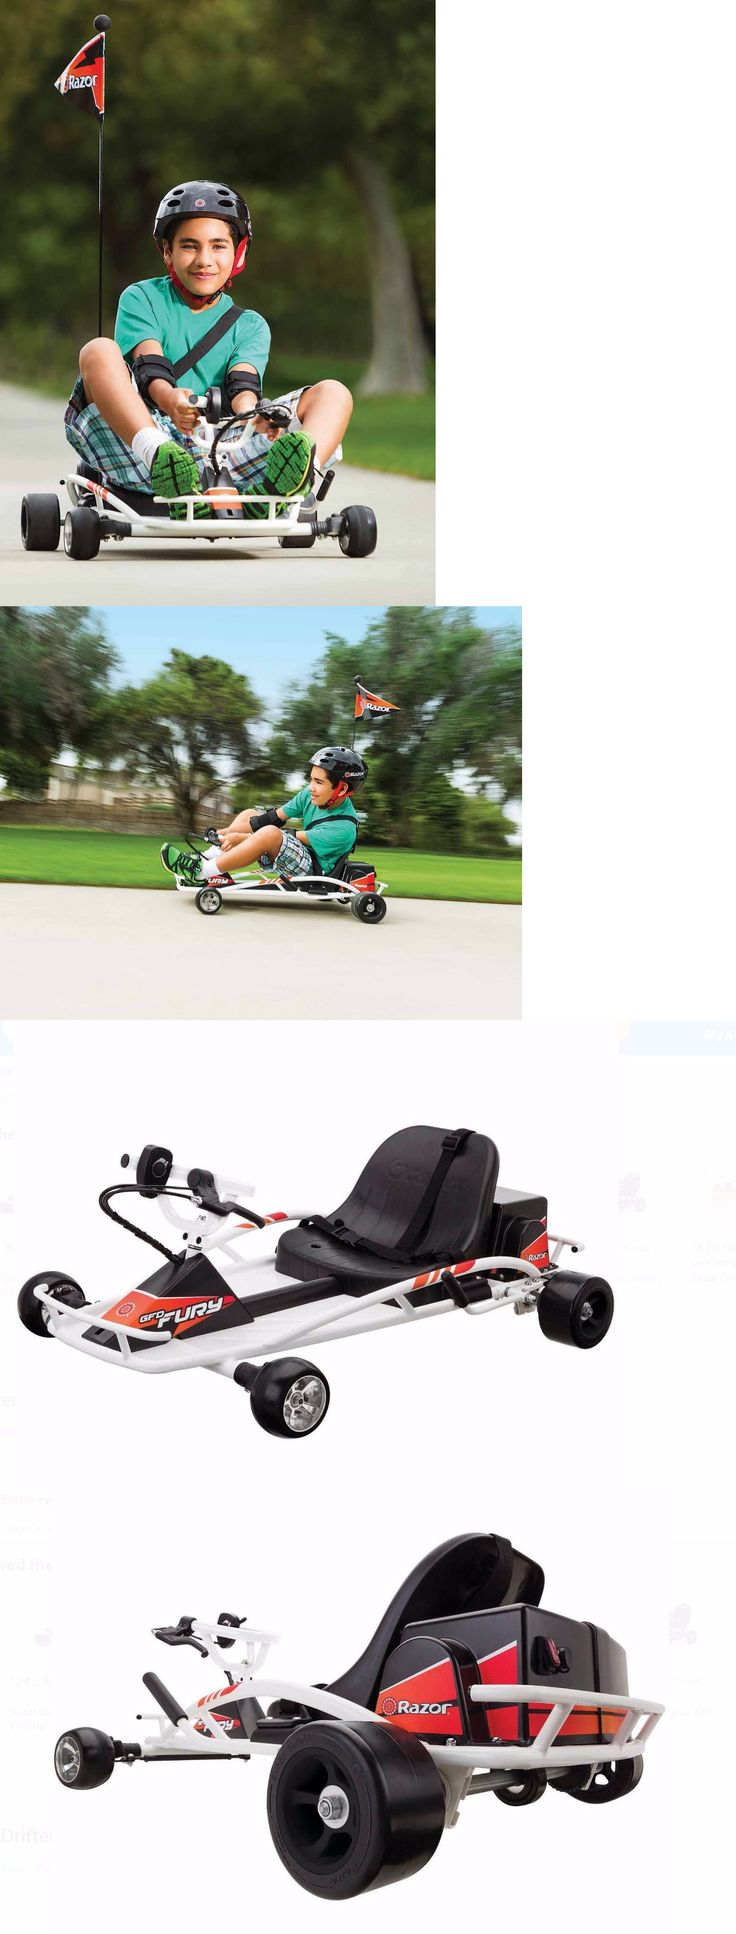 Complete Go-Karts and Frames 64656: Go Karts For Kids Electric Razor Dune Buggy Cart Scooter Battery Throttle Ride -> BUY IT NOW ONLY: $379.99 on eBay!